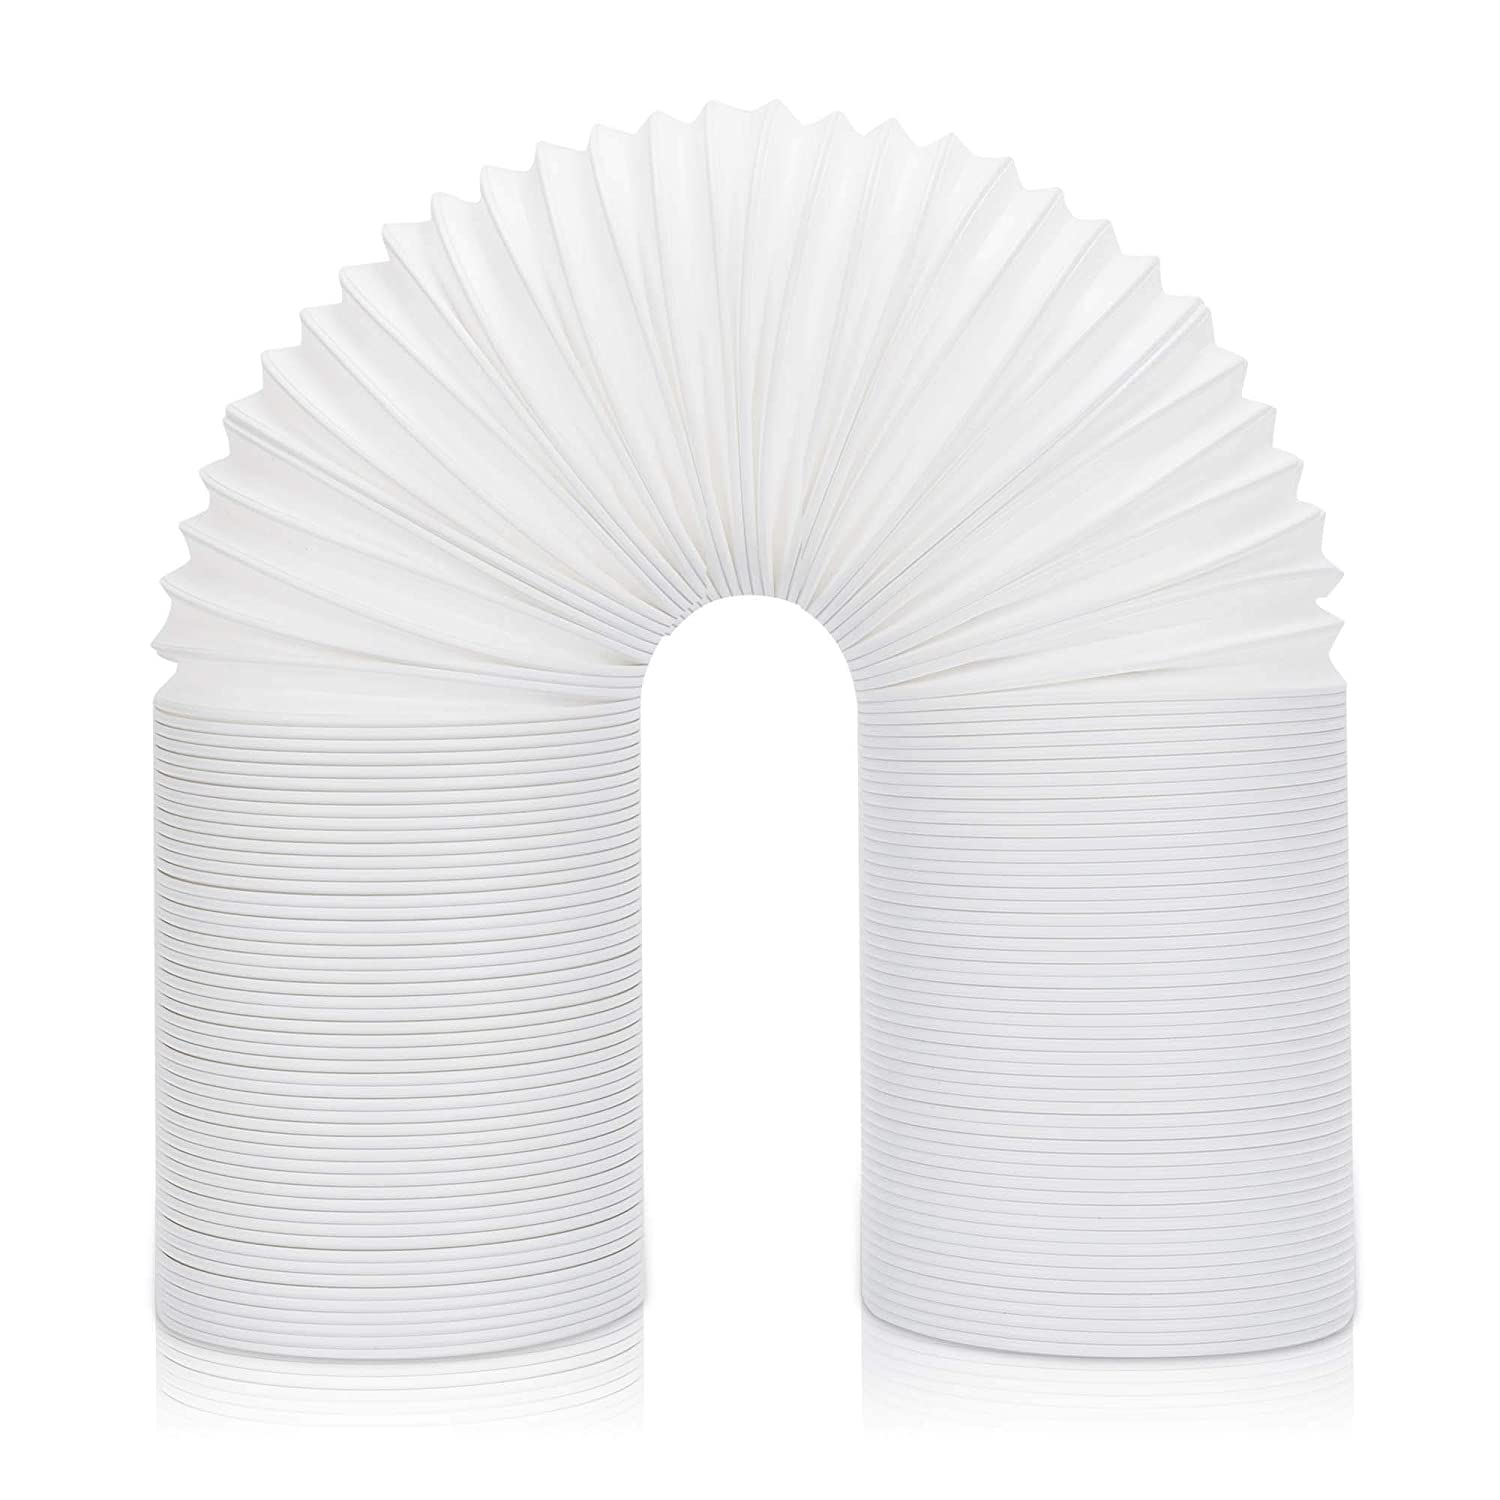 Portable Air Conditioner Exhaust Hose - 5in Diameter, 79in Extended - Universal Fit Replacement AC Tube - Counter Clockwise Threads Air Conditioner Hose - Portable AC Exhaust Hose